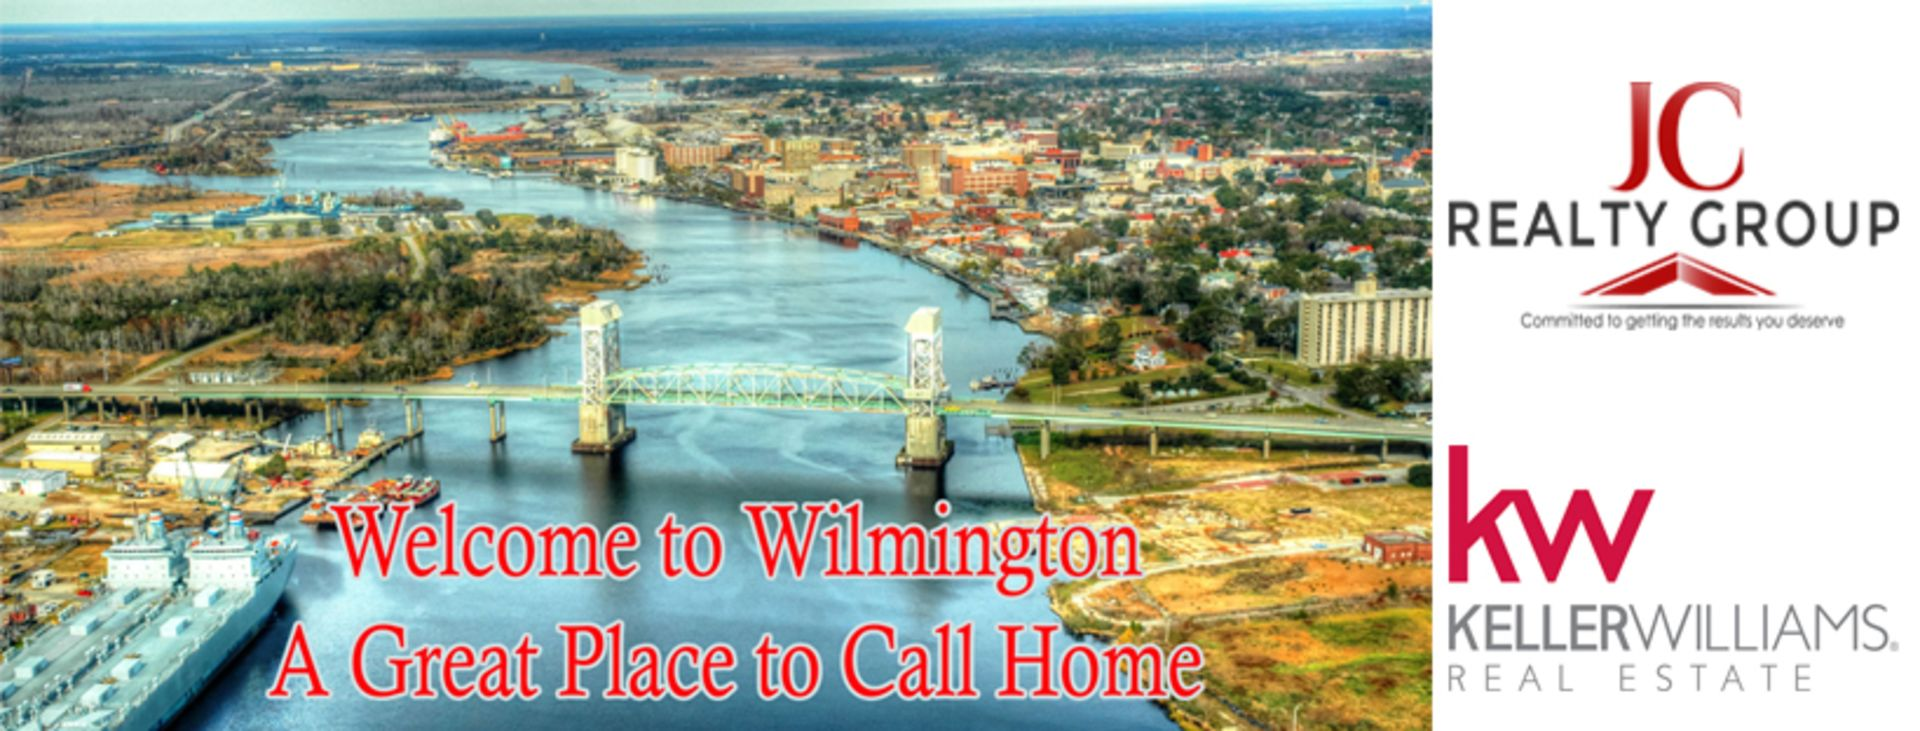 Keller Williams is growing and expanding in Southeast North Carolina